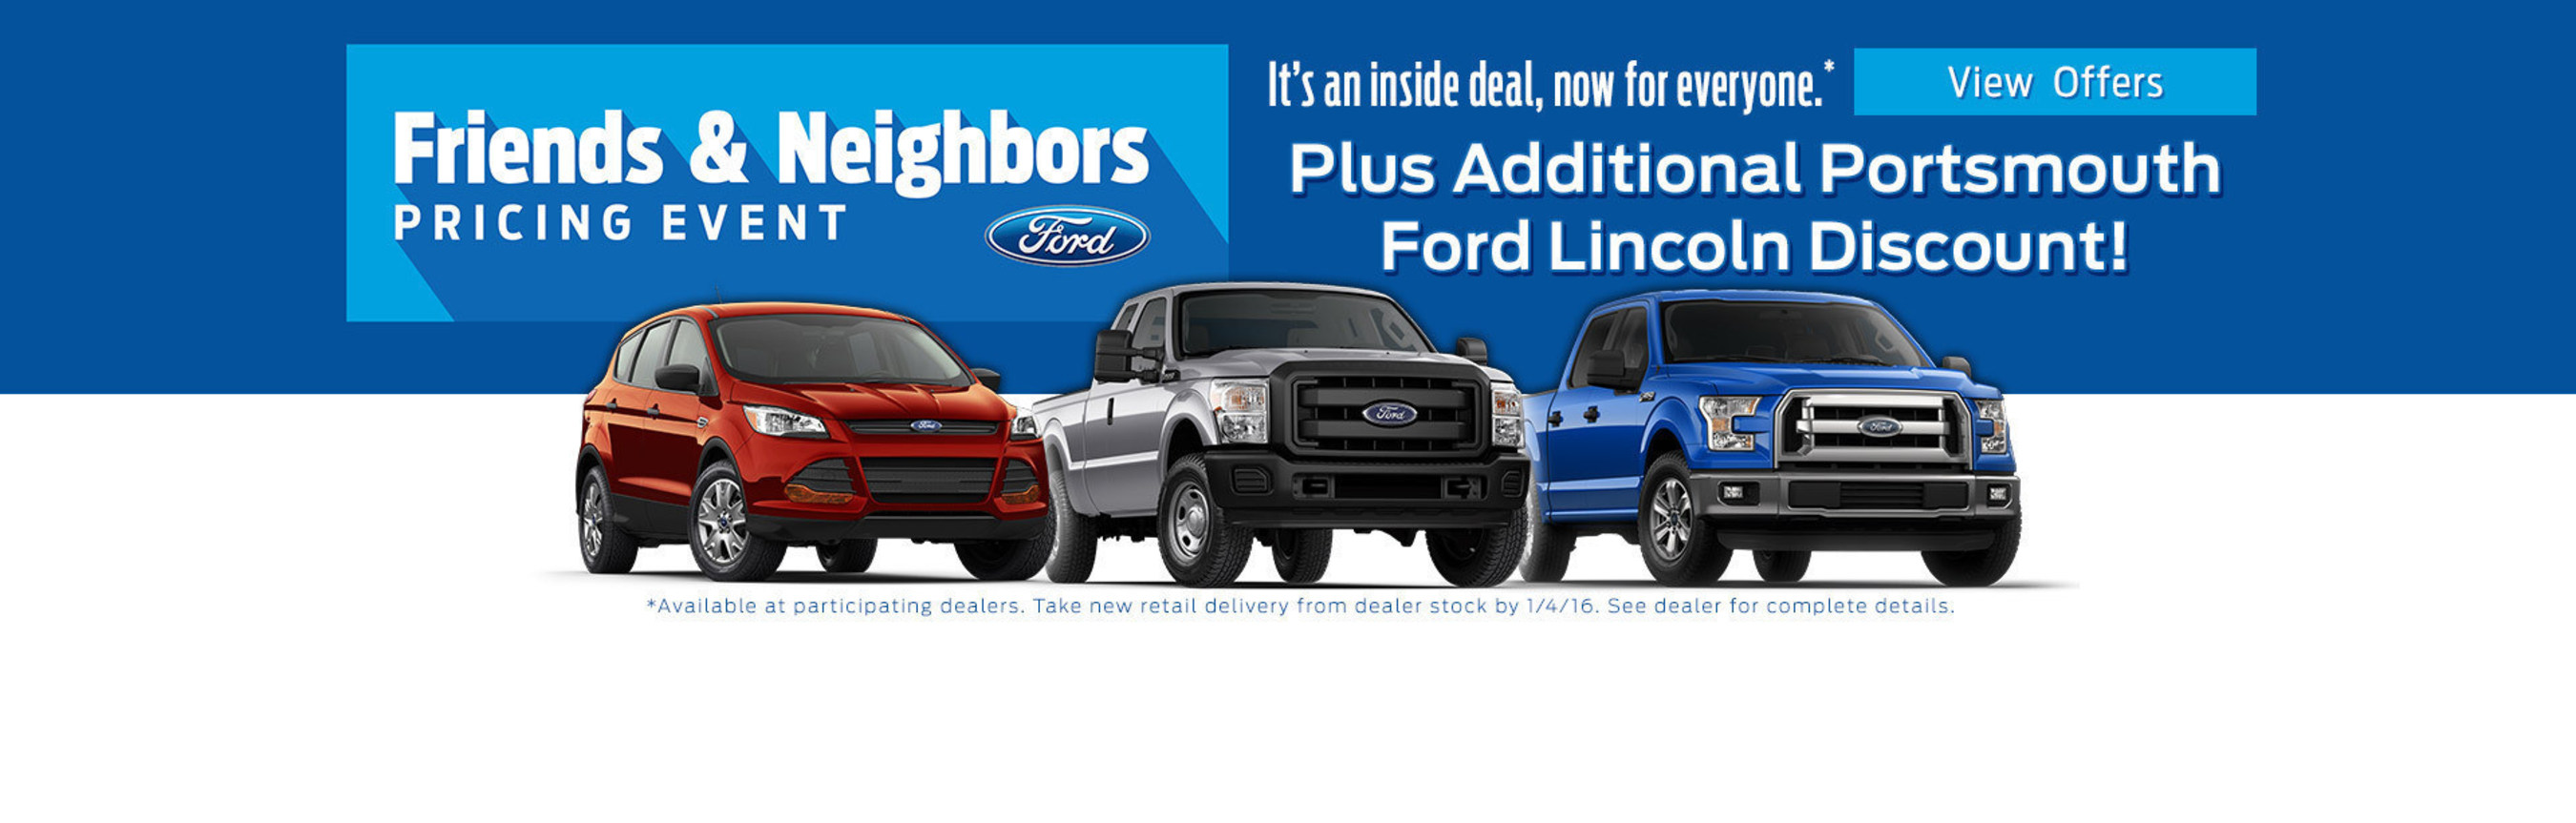 Portsmouth Ford dealership to participate in Ford Friends and Neighbors Pricing Event